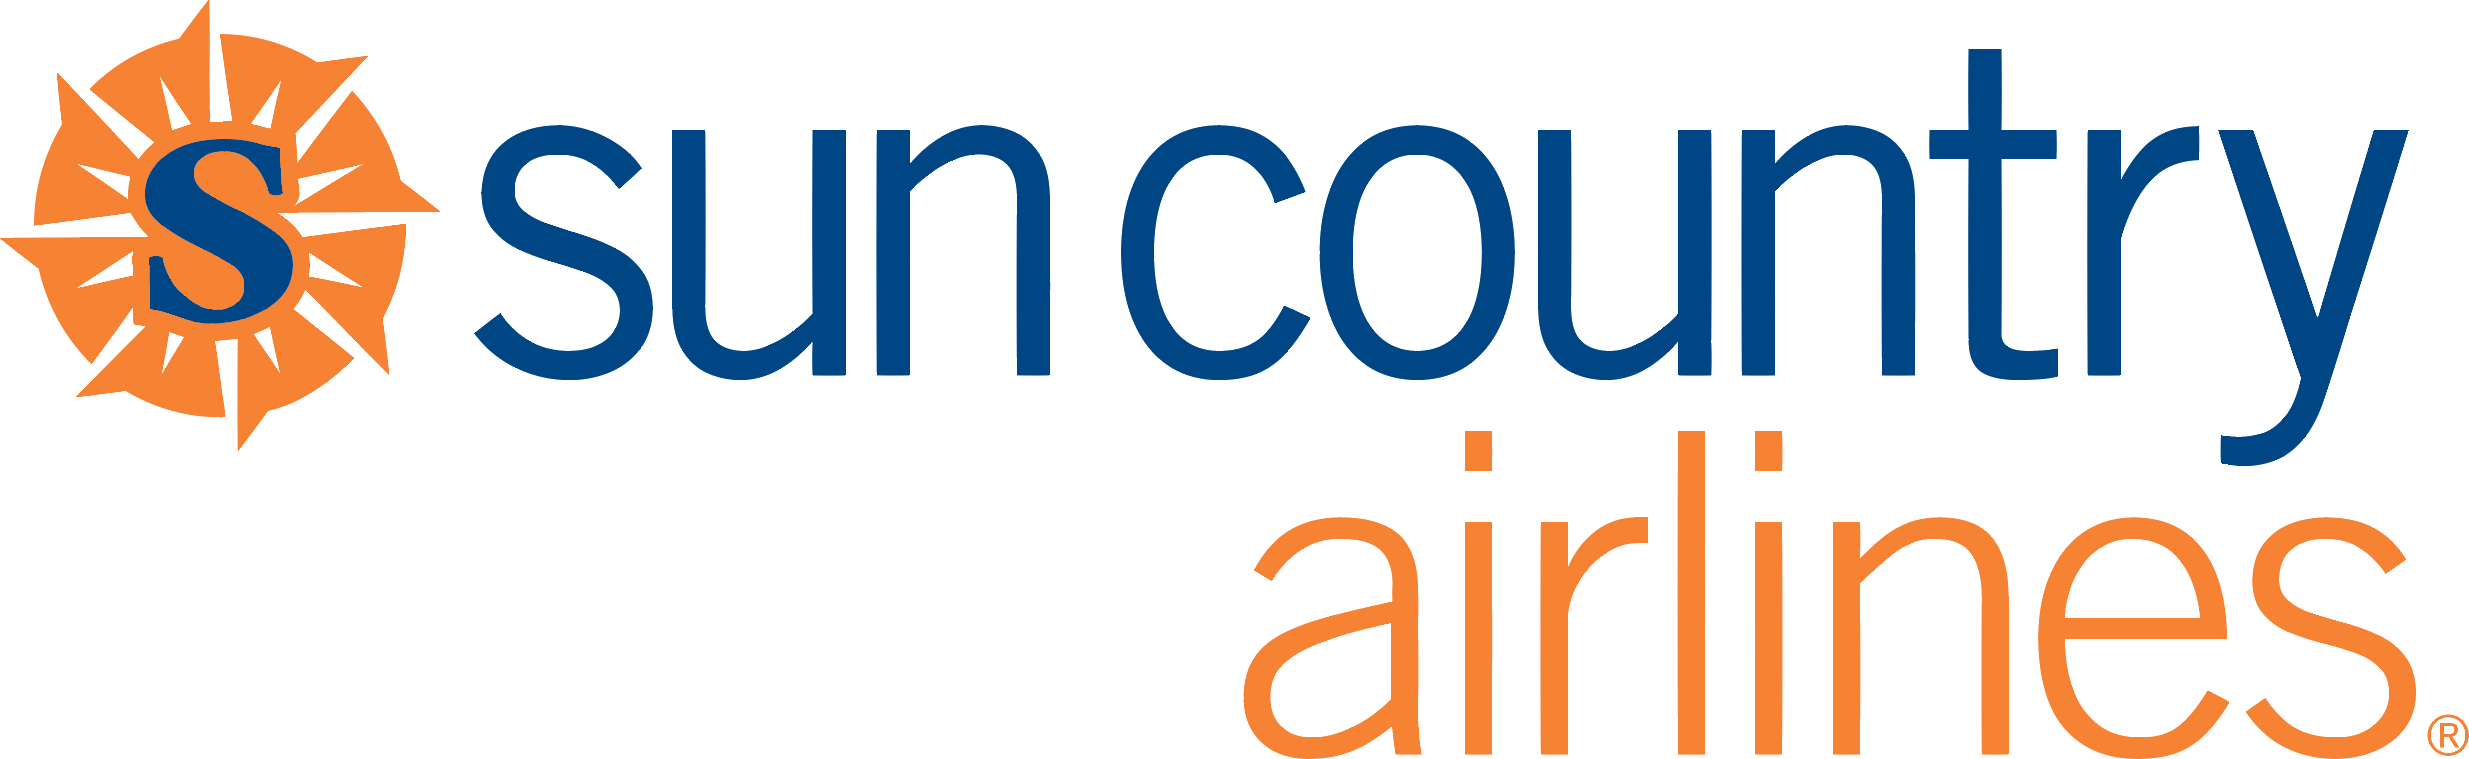 Recent Sun Country Airlines Posts View All. 12 Travel Gift Ideas for Any Globetrotter, Constant Flyer, or Wannabe Jetsetter in Your Life. 12 Travel Gift Ideas for Any Globetrotter, Constant Flyer, or Wannabe Jetsetter in Your Life.